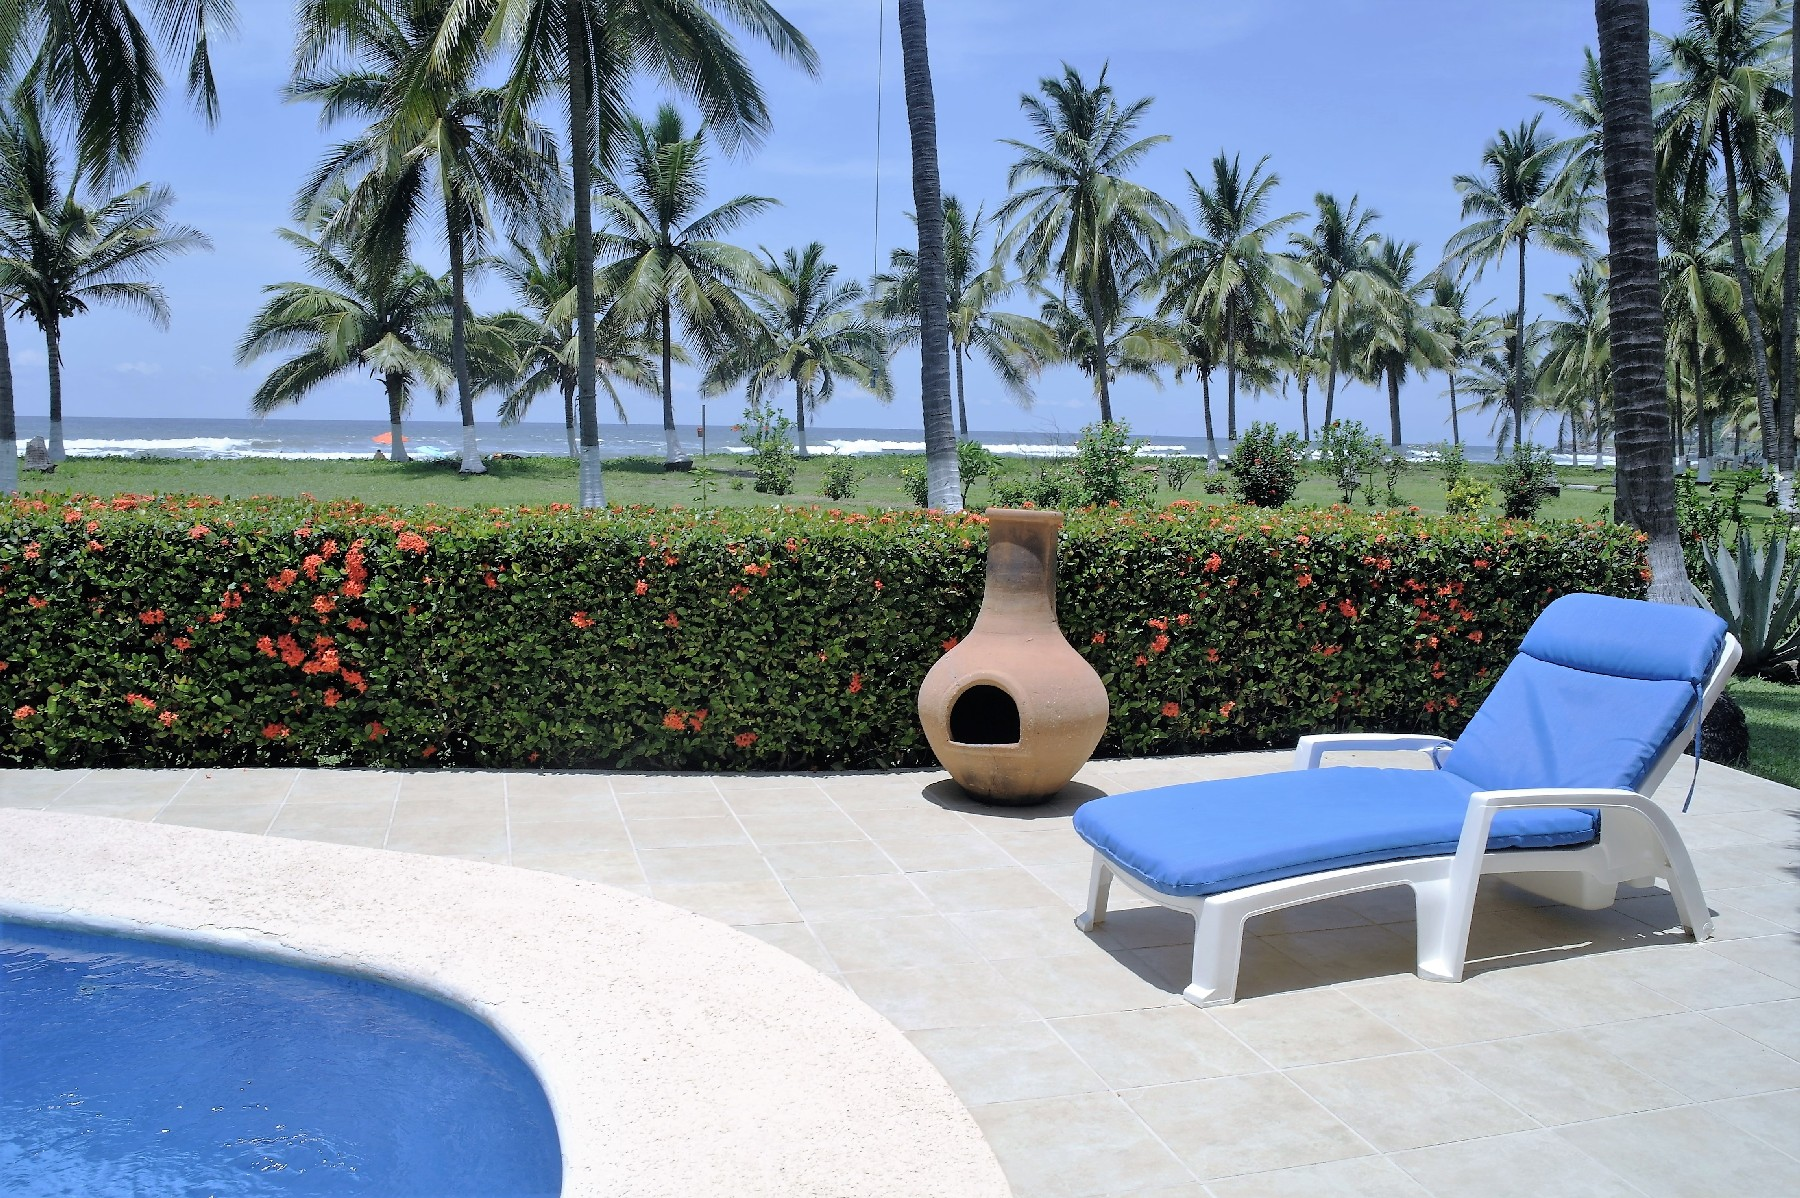 Property Of Vacation rental, Villa Tortuga, Riviera Nayarit